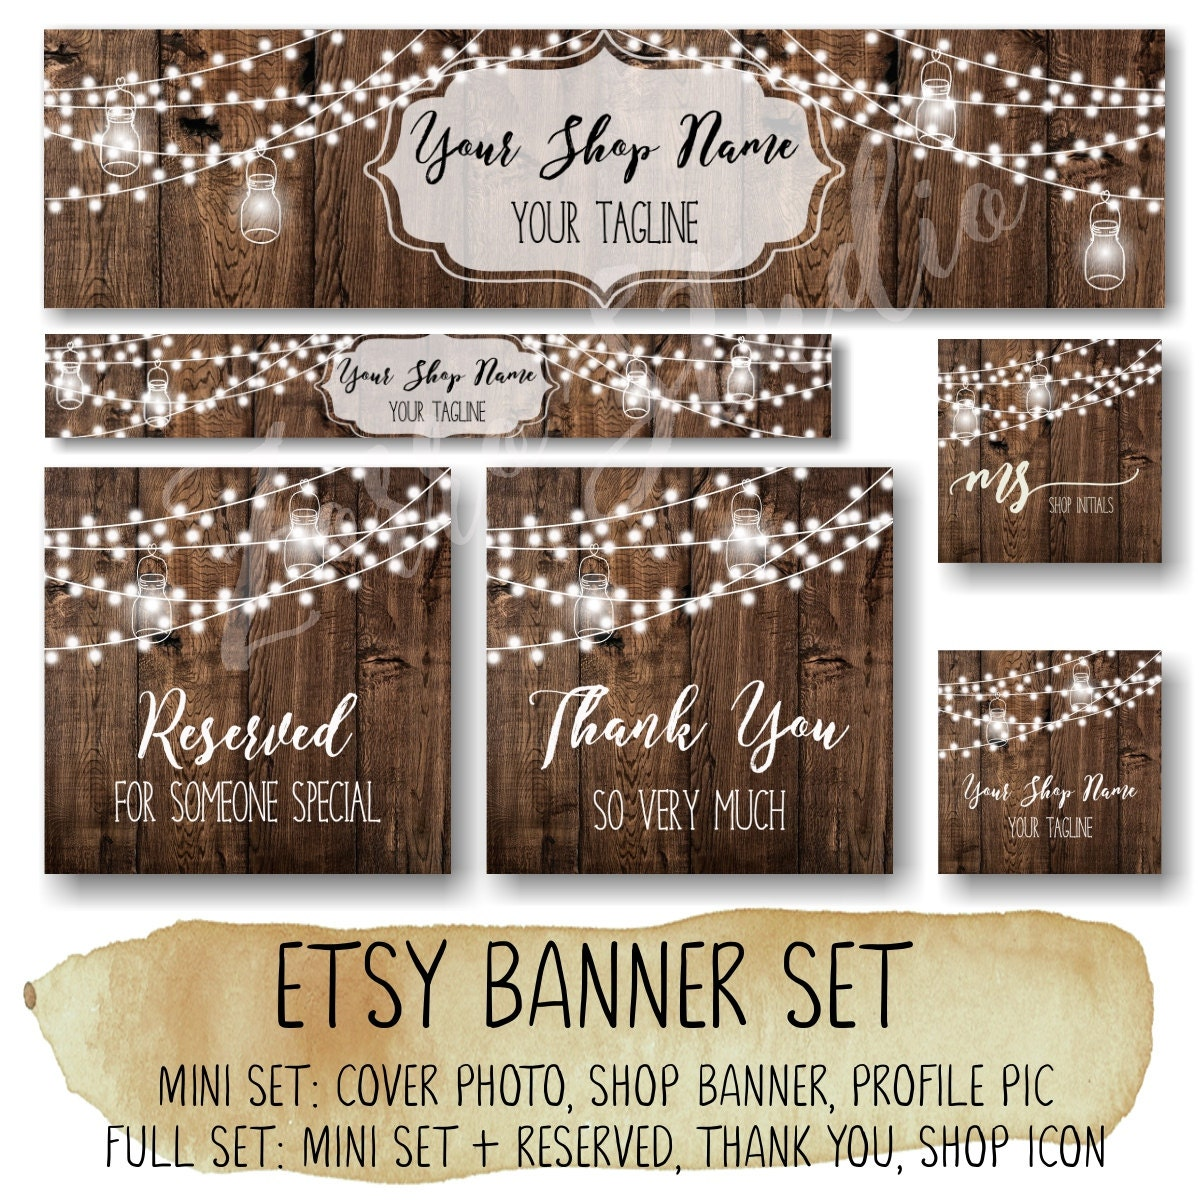 Etsy banner set rustic banner set wooden string light for Etsy shop policies template